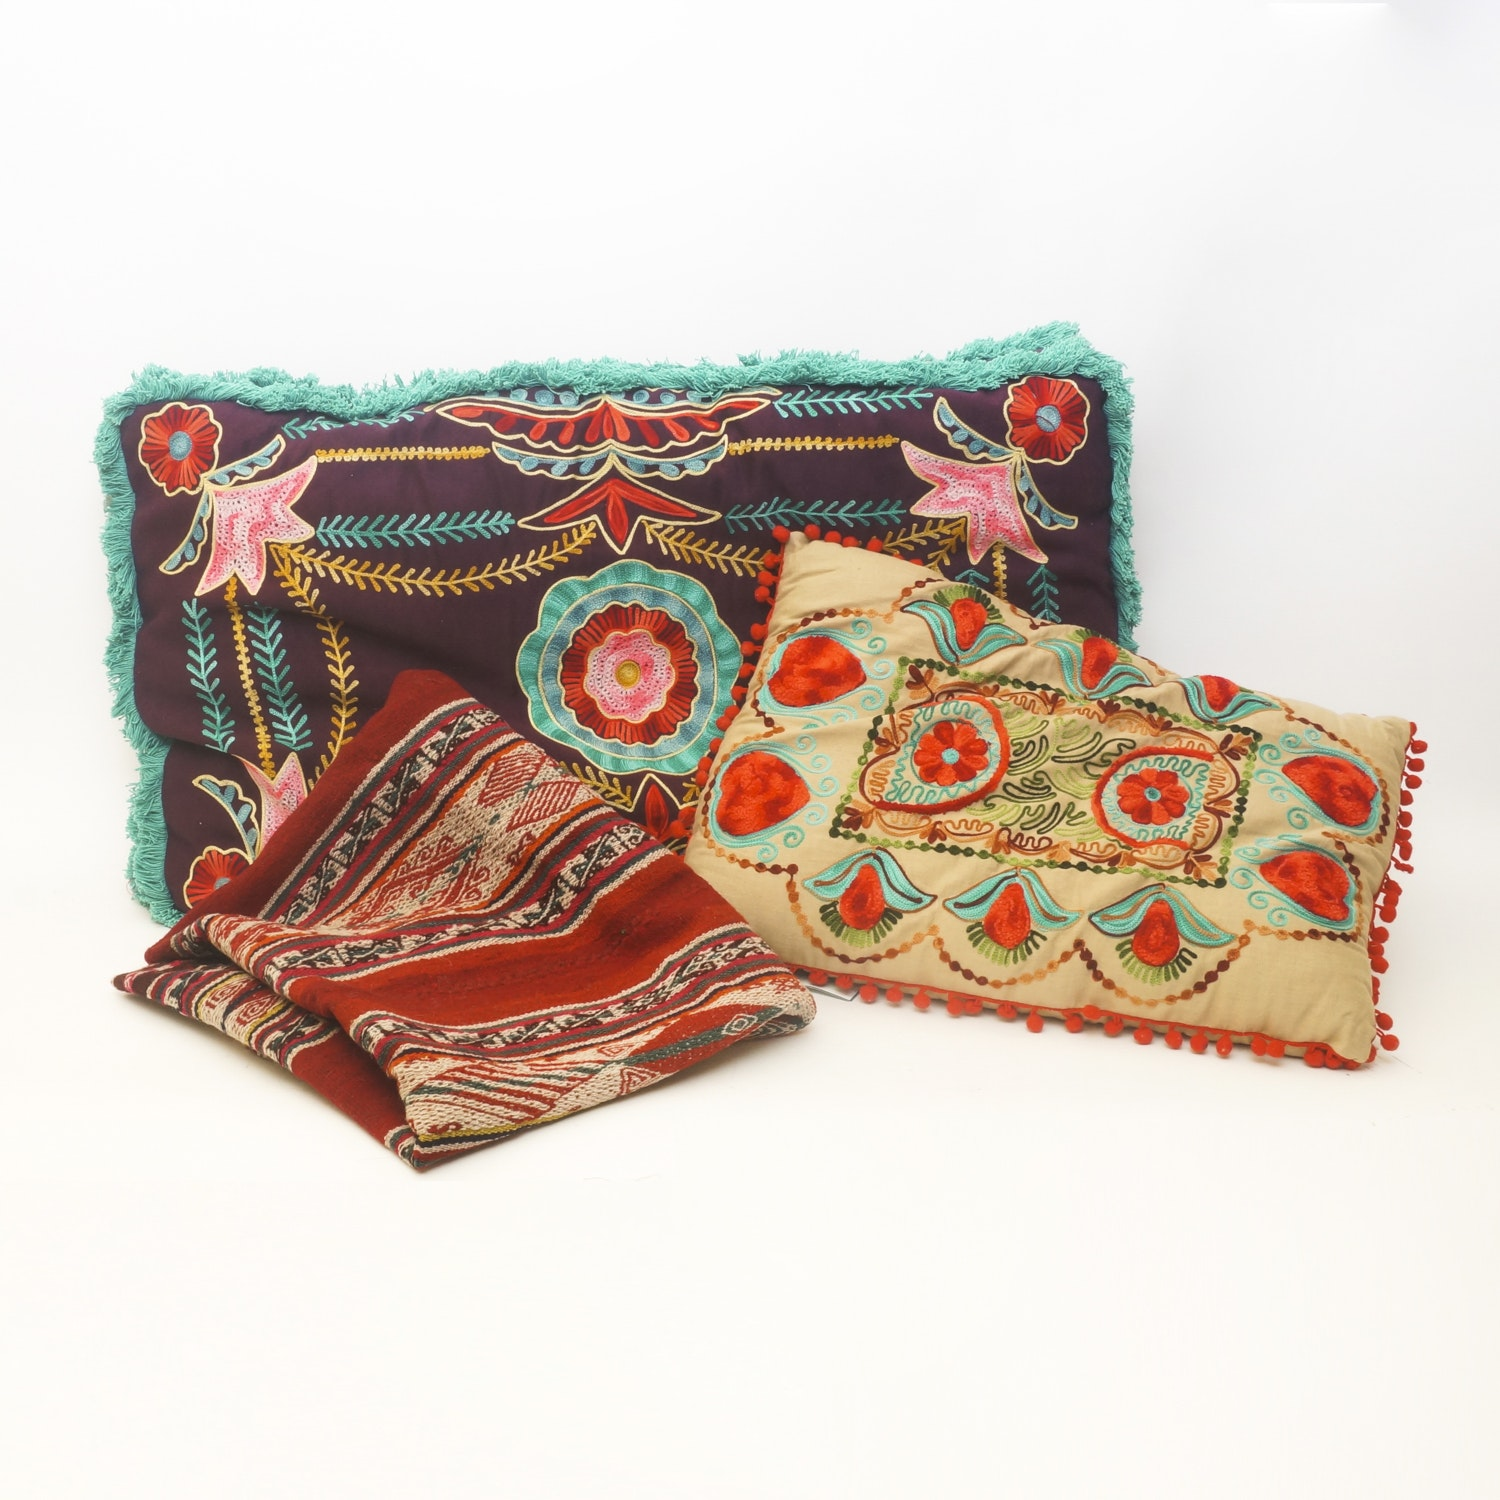 karma living embroidered pillows with throw